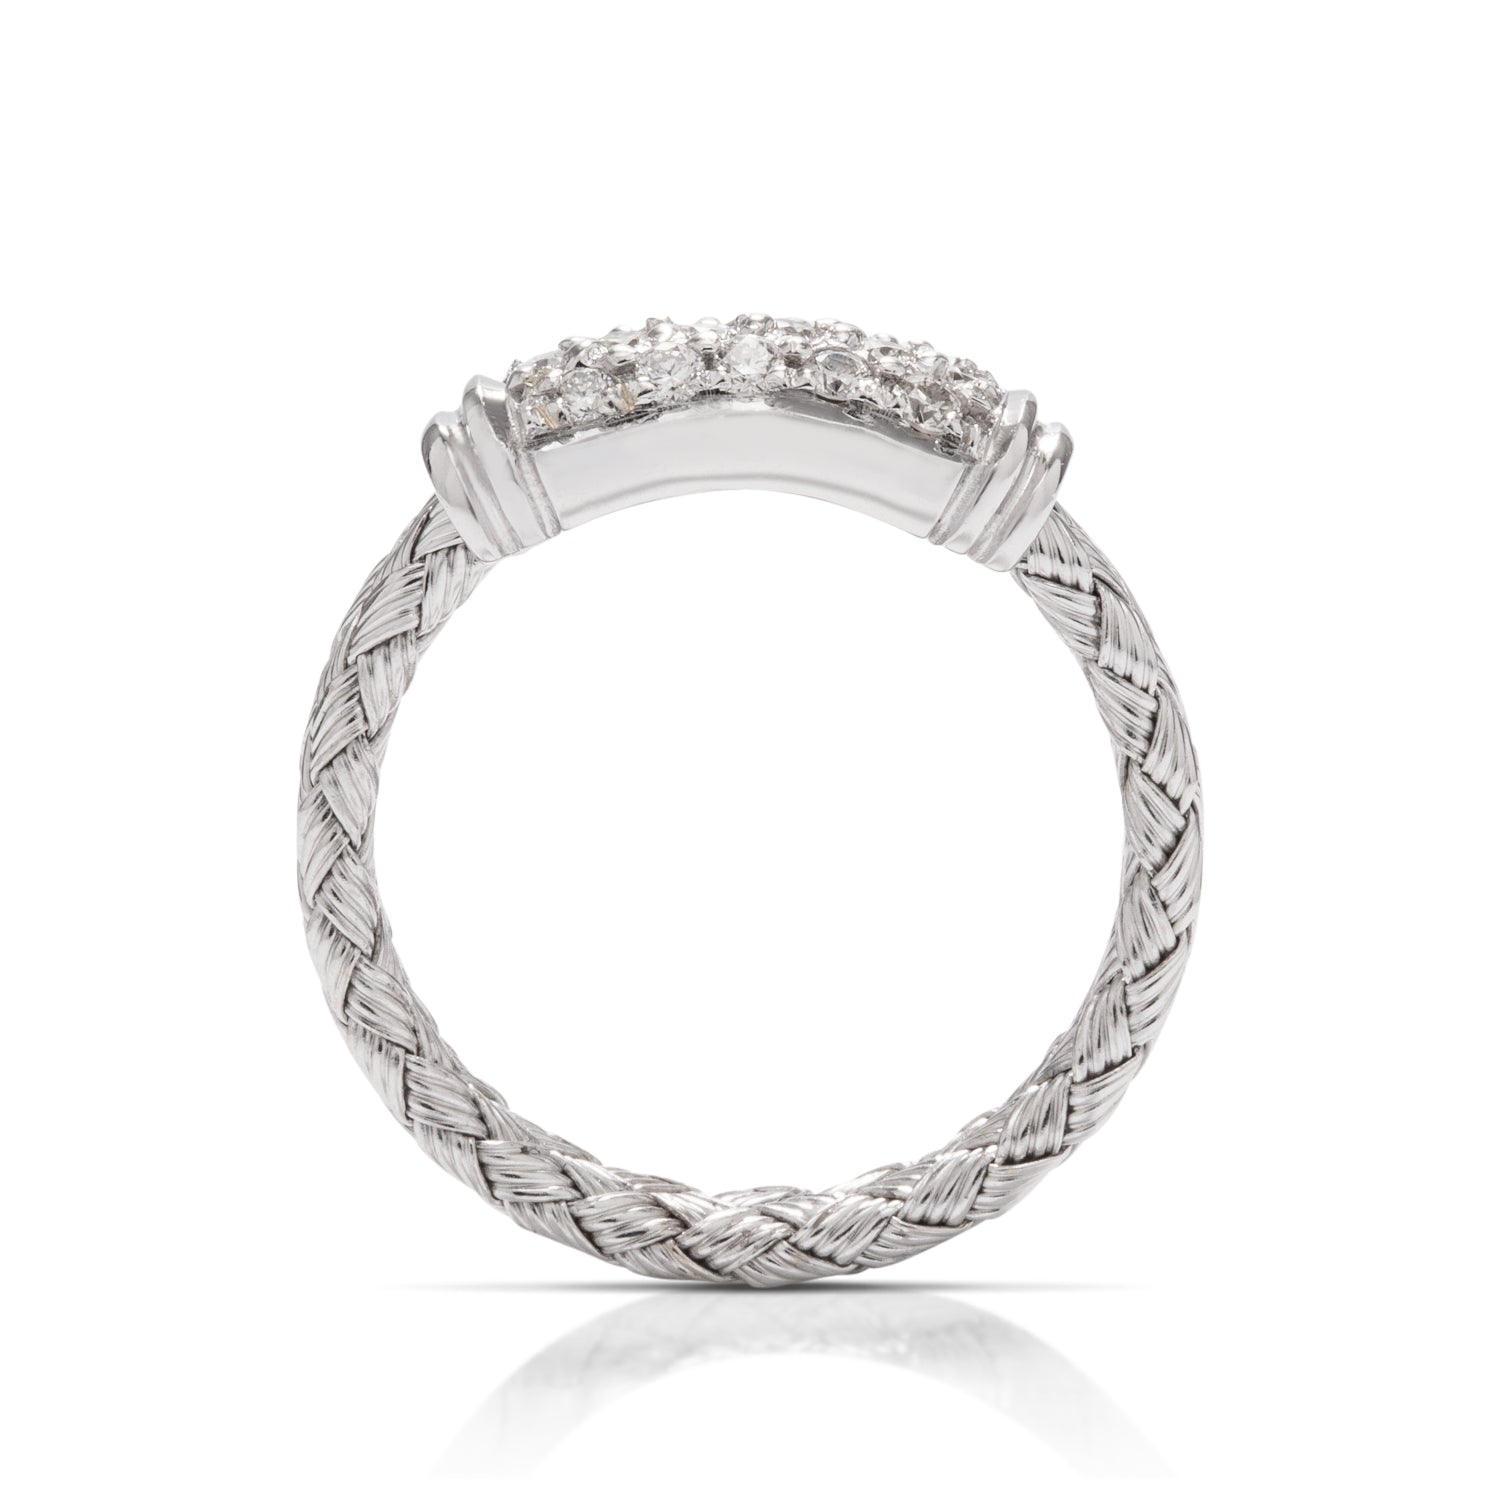 18k Braided White Gold Diamond Ring - Charles Koll Jewellers